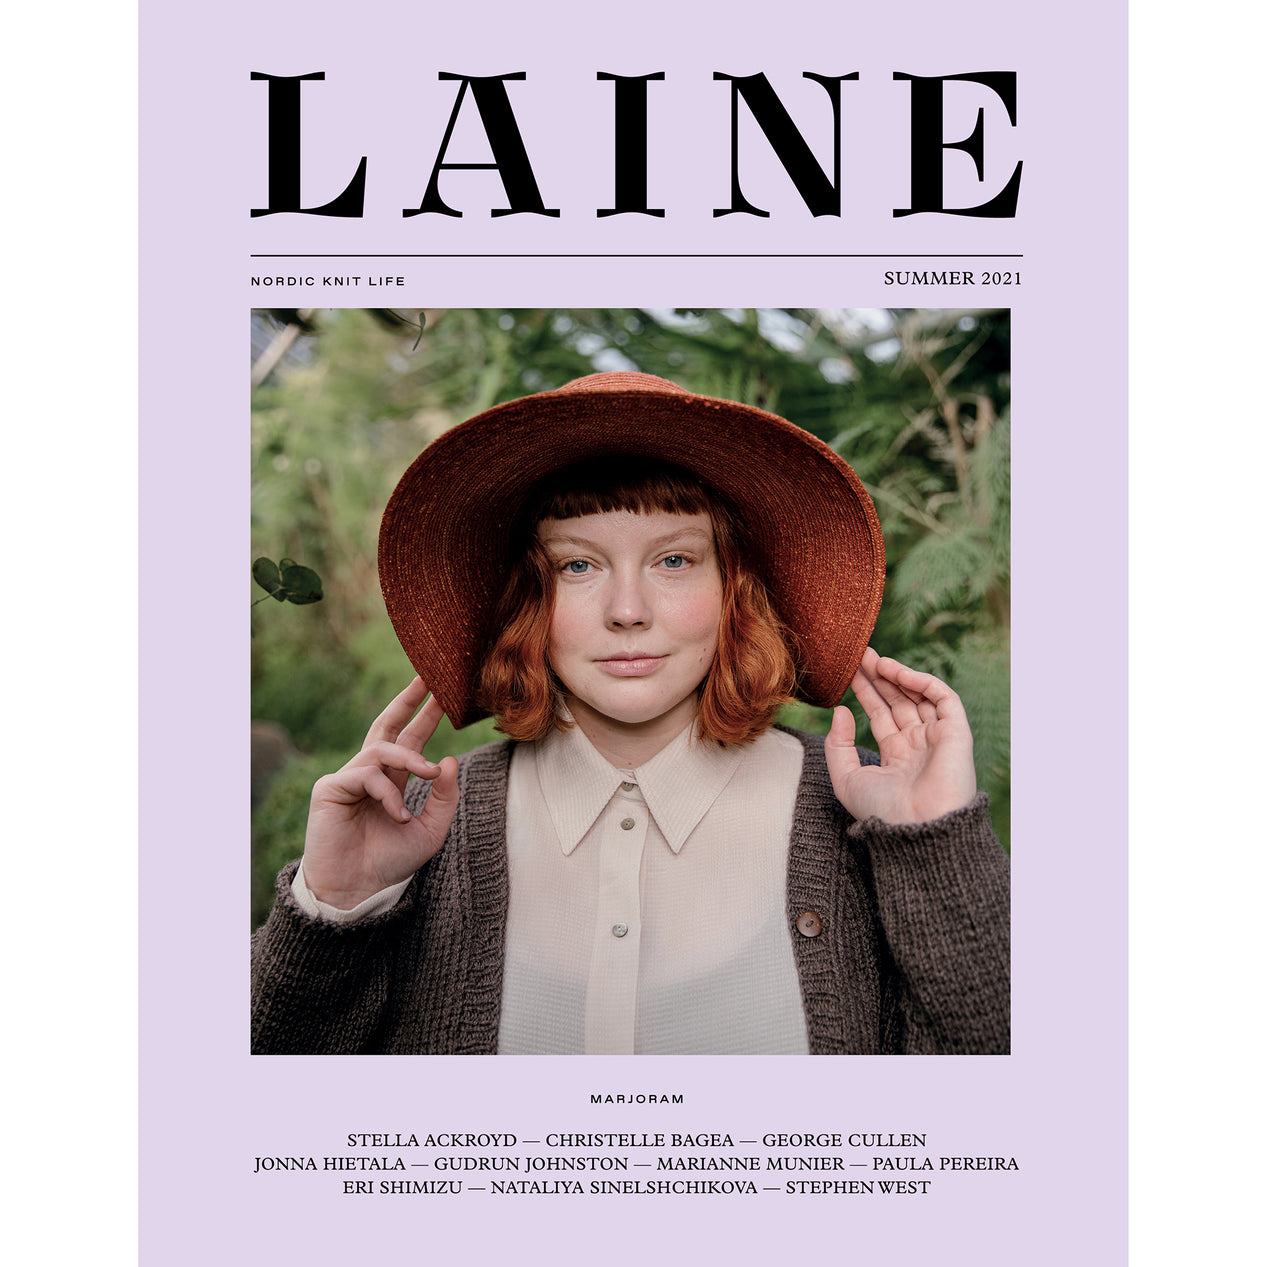 Laine - Nordic Knit Life - issue 11